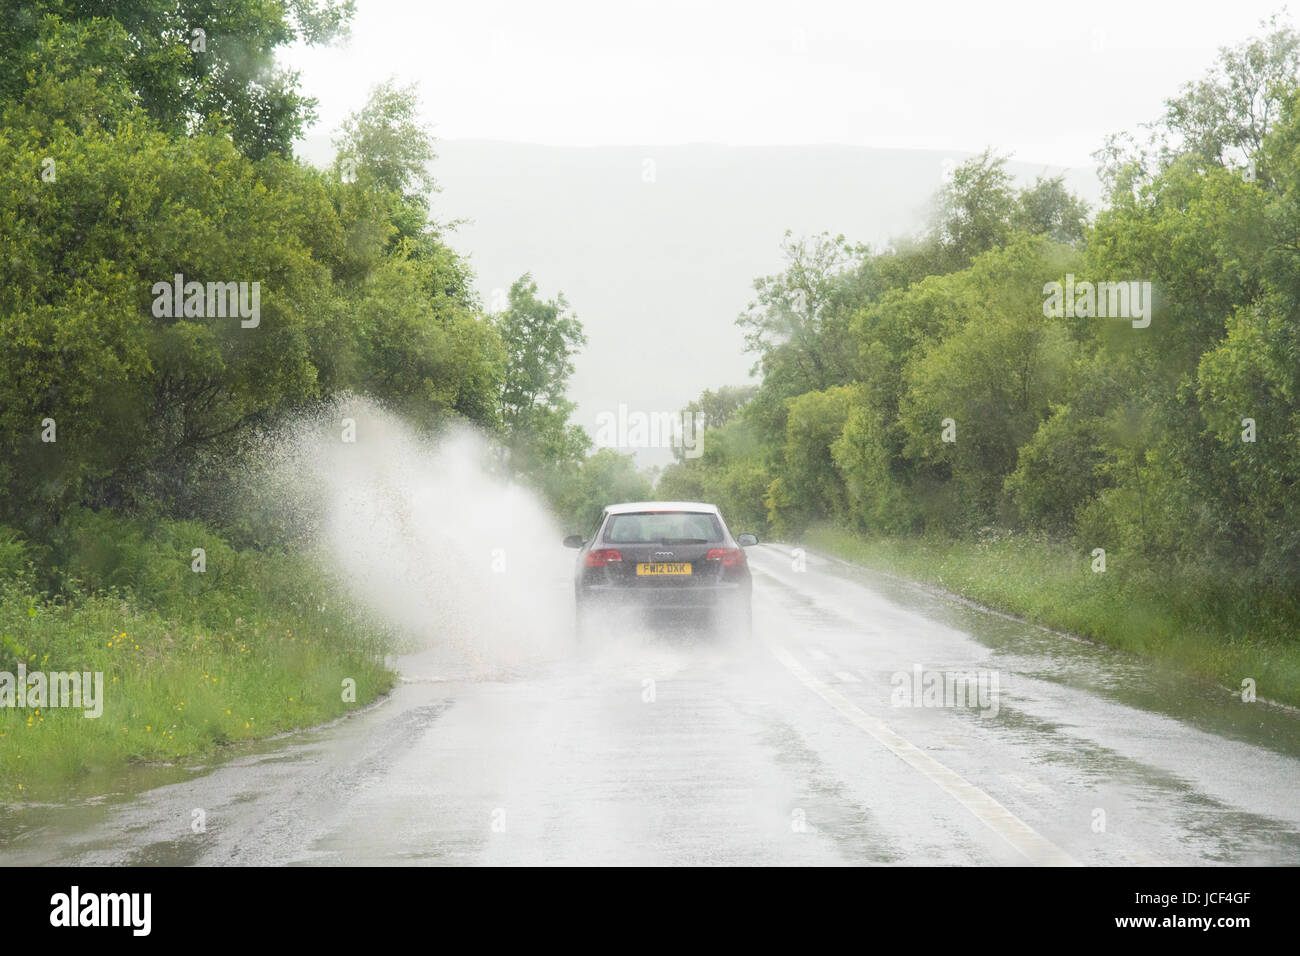 Mugdock, Stirling, Scotland, UK. 15th June, 2017. UK weather - surface water on roads during a heavy afternoon shower - Stock Image